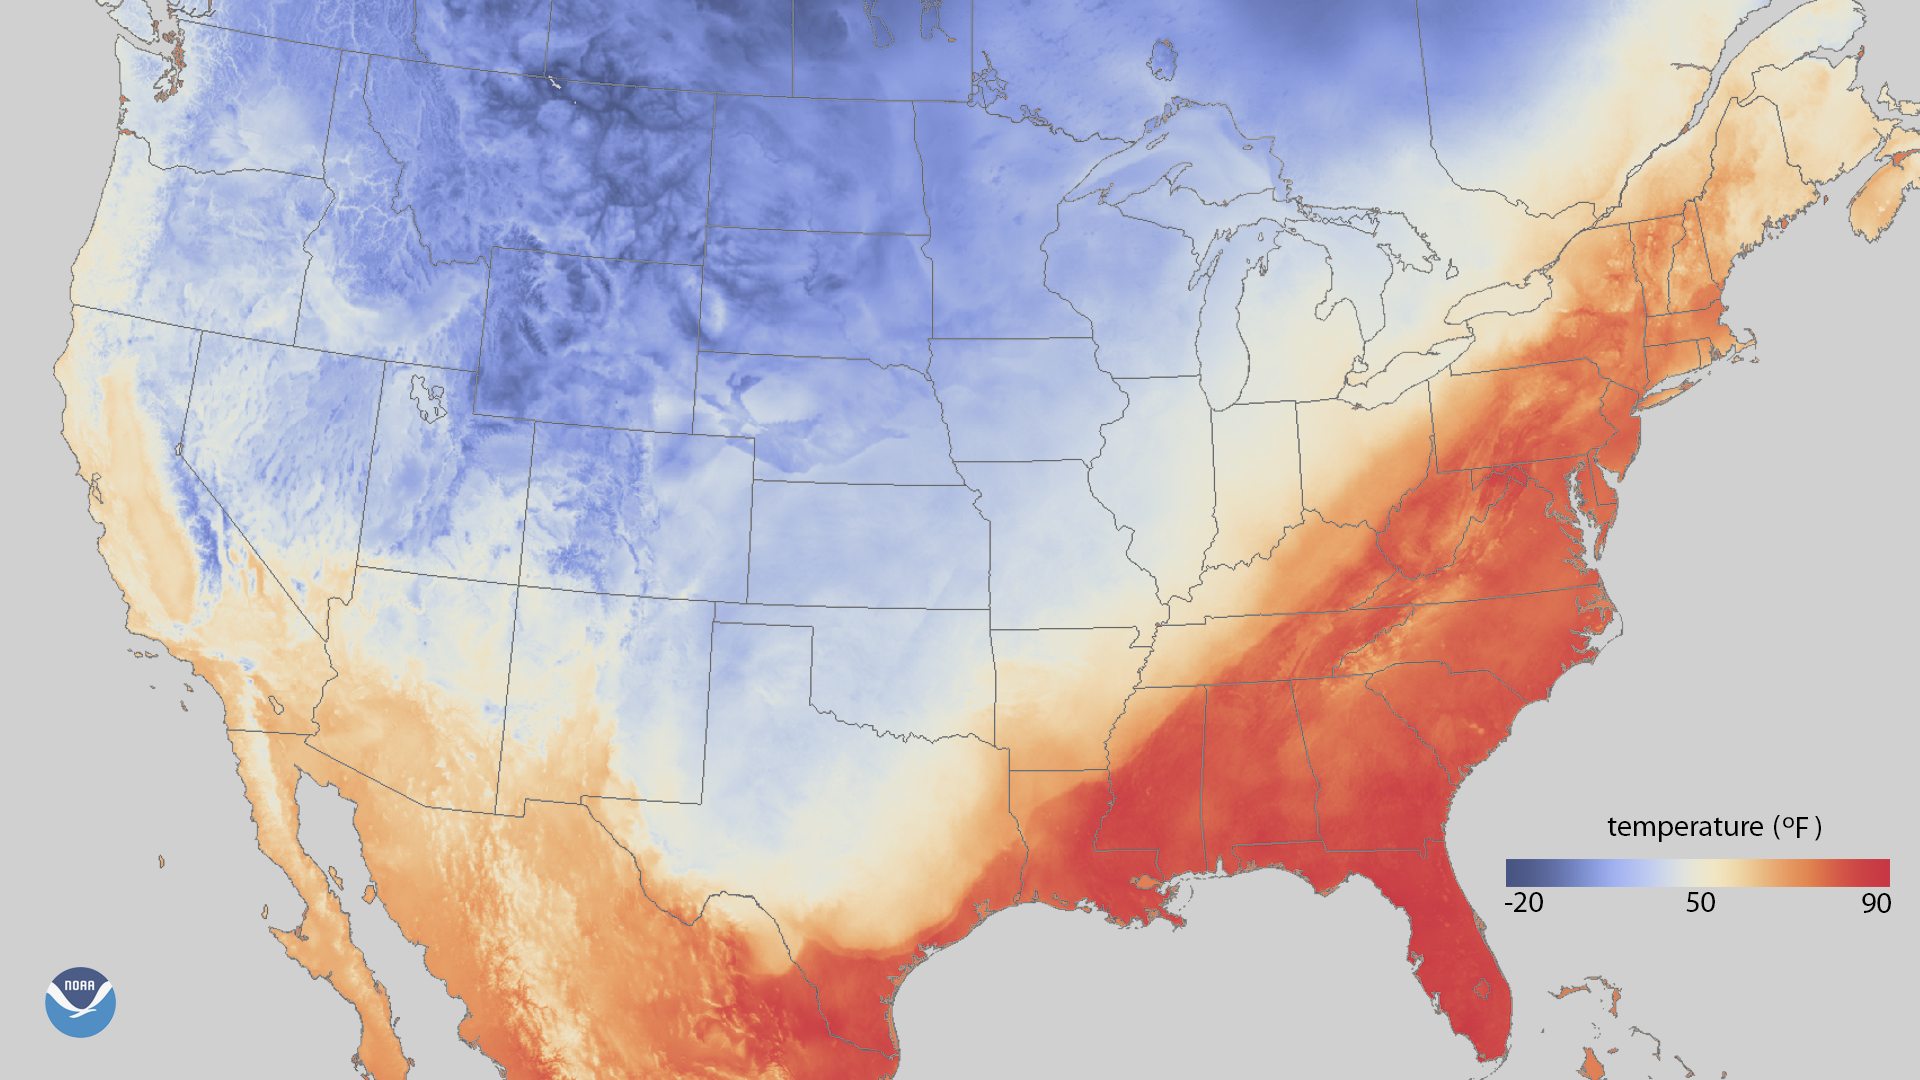 2017–18 North American winter - Wikipedia on noaa snow forecast map, maine satellite maps, maine temp map, snow accumulation map, new england snowmobile trail map, winter snow storm map, maine any deer zones, ocean water depth map, maine on a map, maine vegetation map, maine 10 day forecast, maine weather map, maine snowpack, stonington me map, maine average snowfall, snow radar map, minnesota drainage basin map, maine land cover map, buffalo snow map, moosehead lake depth map,